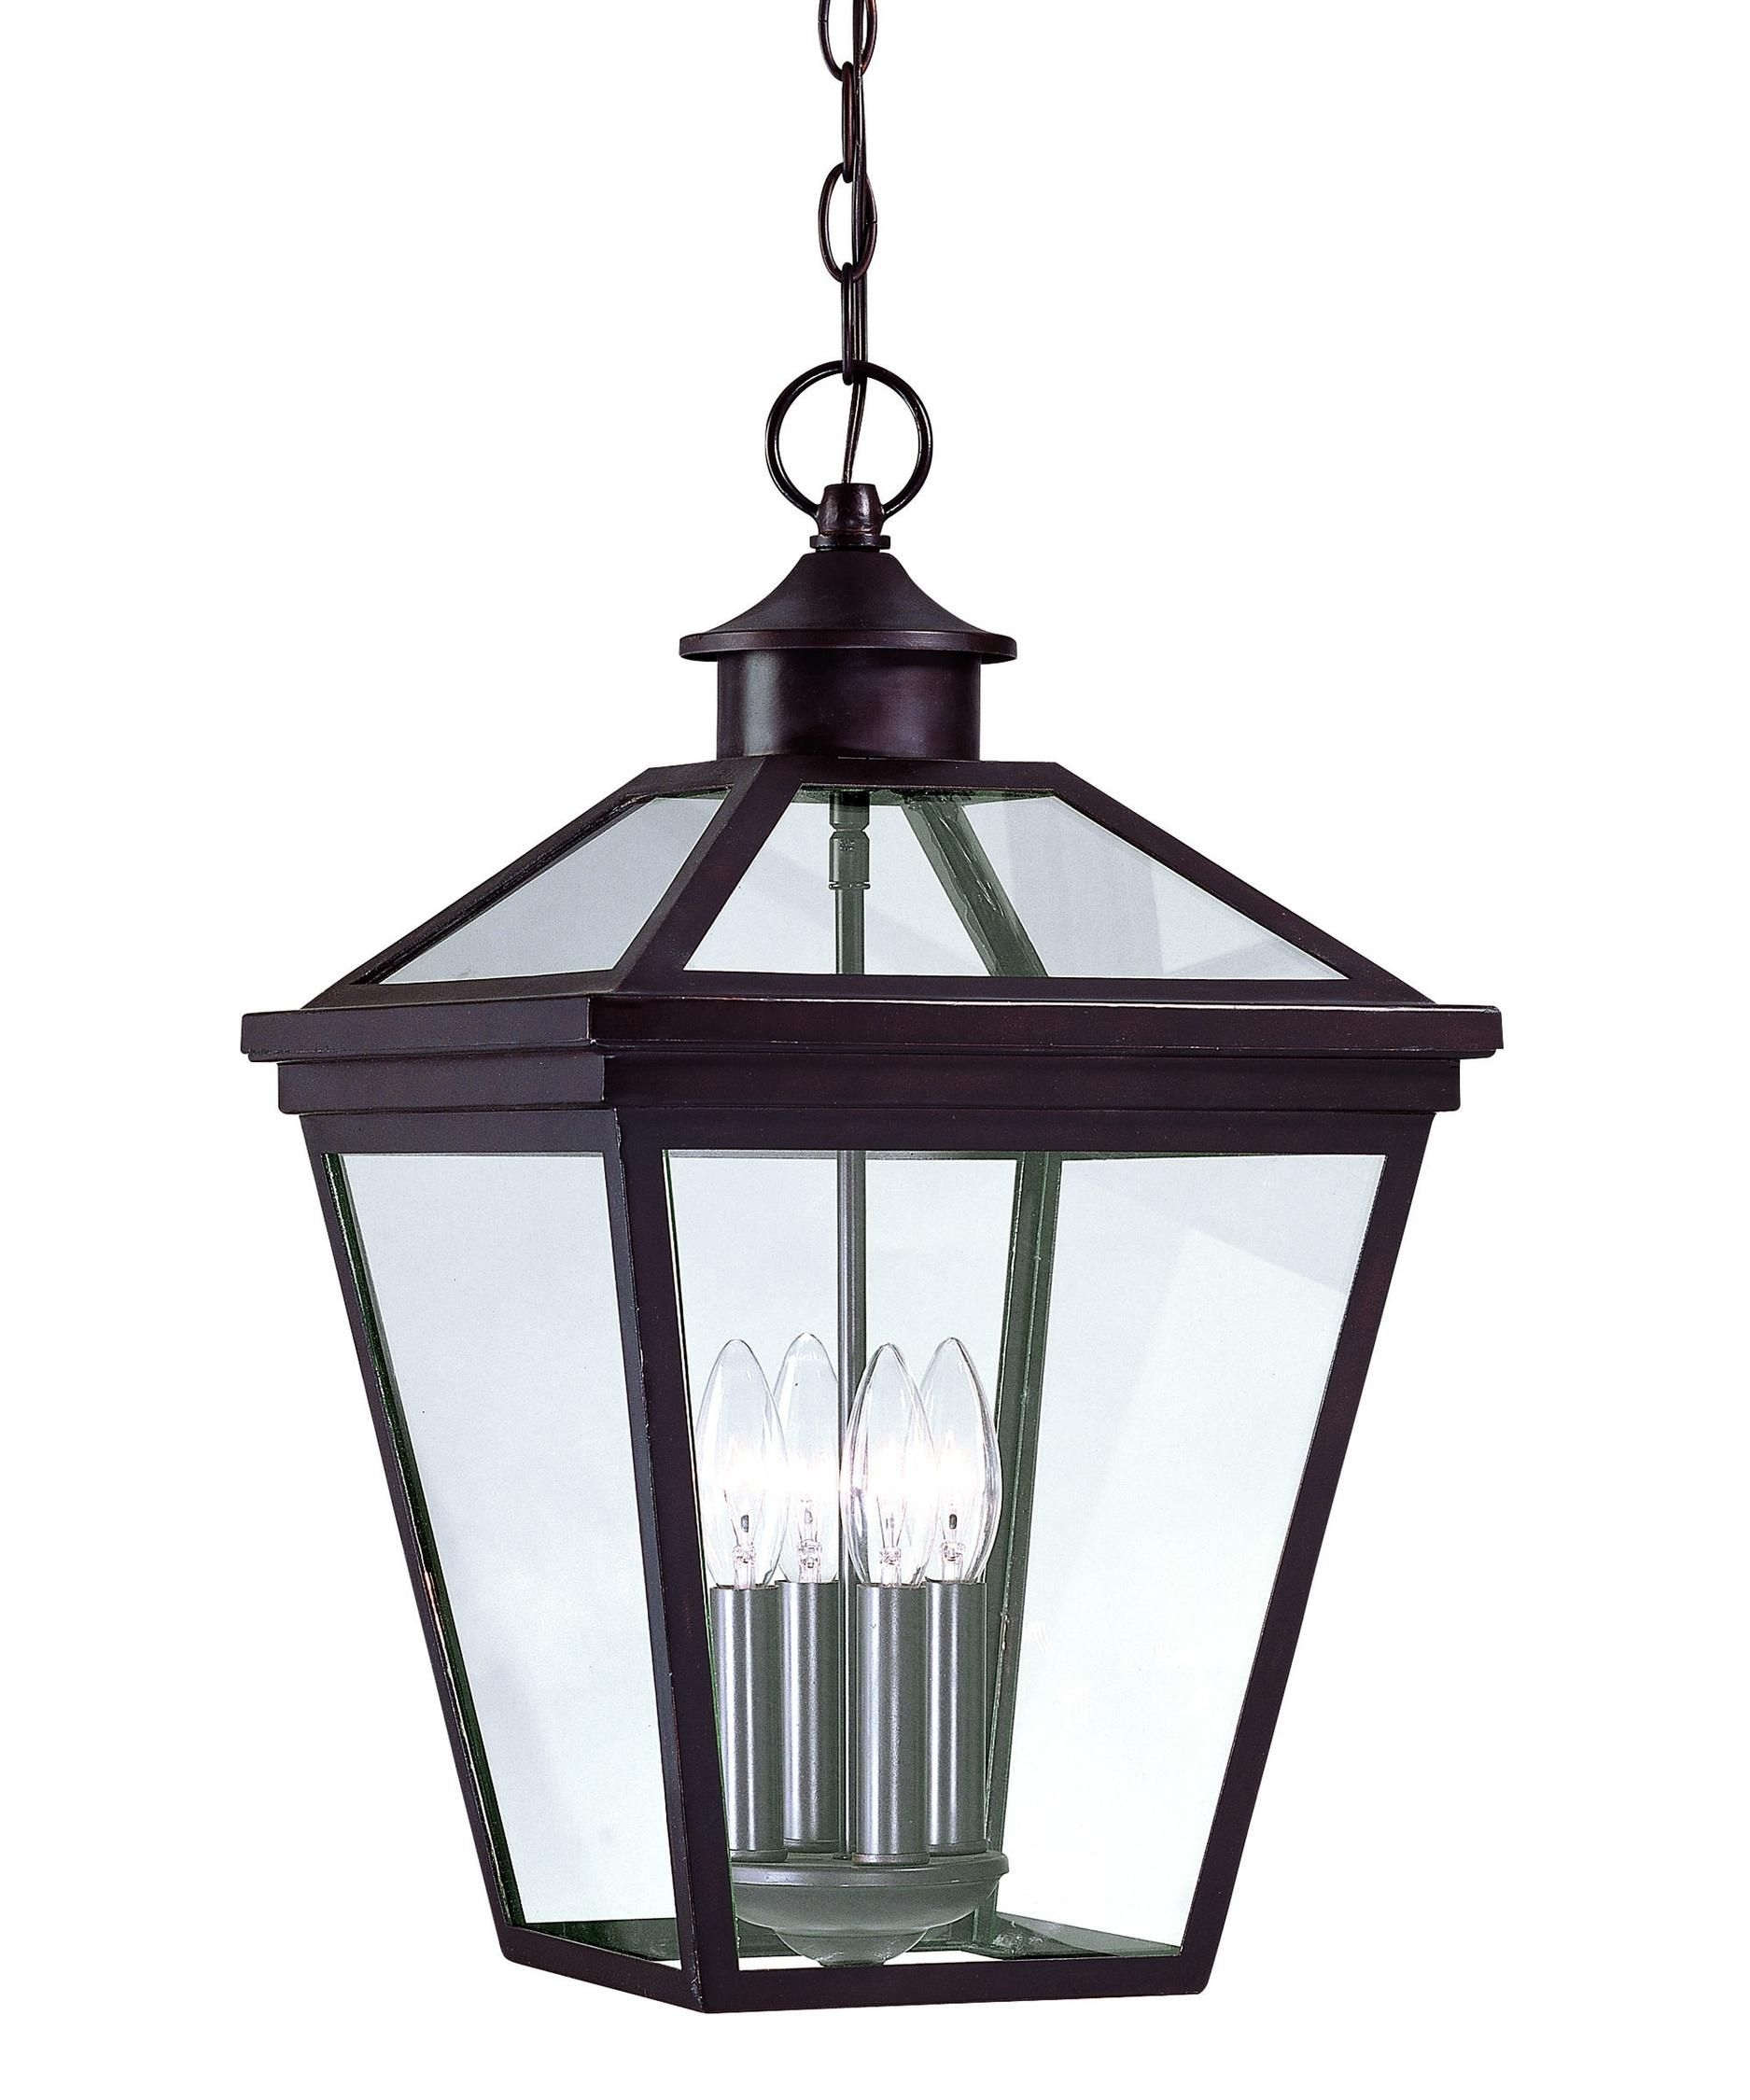 Savoy House Ellijay 4 Light Outdoor Hanging Lantern | Capitol Within Outdoor Hanging Lights (View 13 of 15)